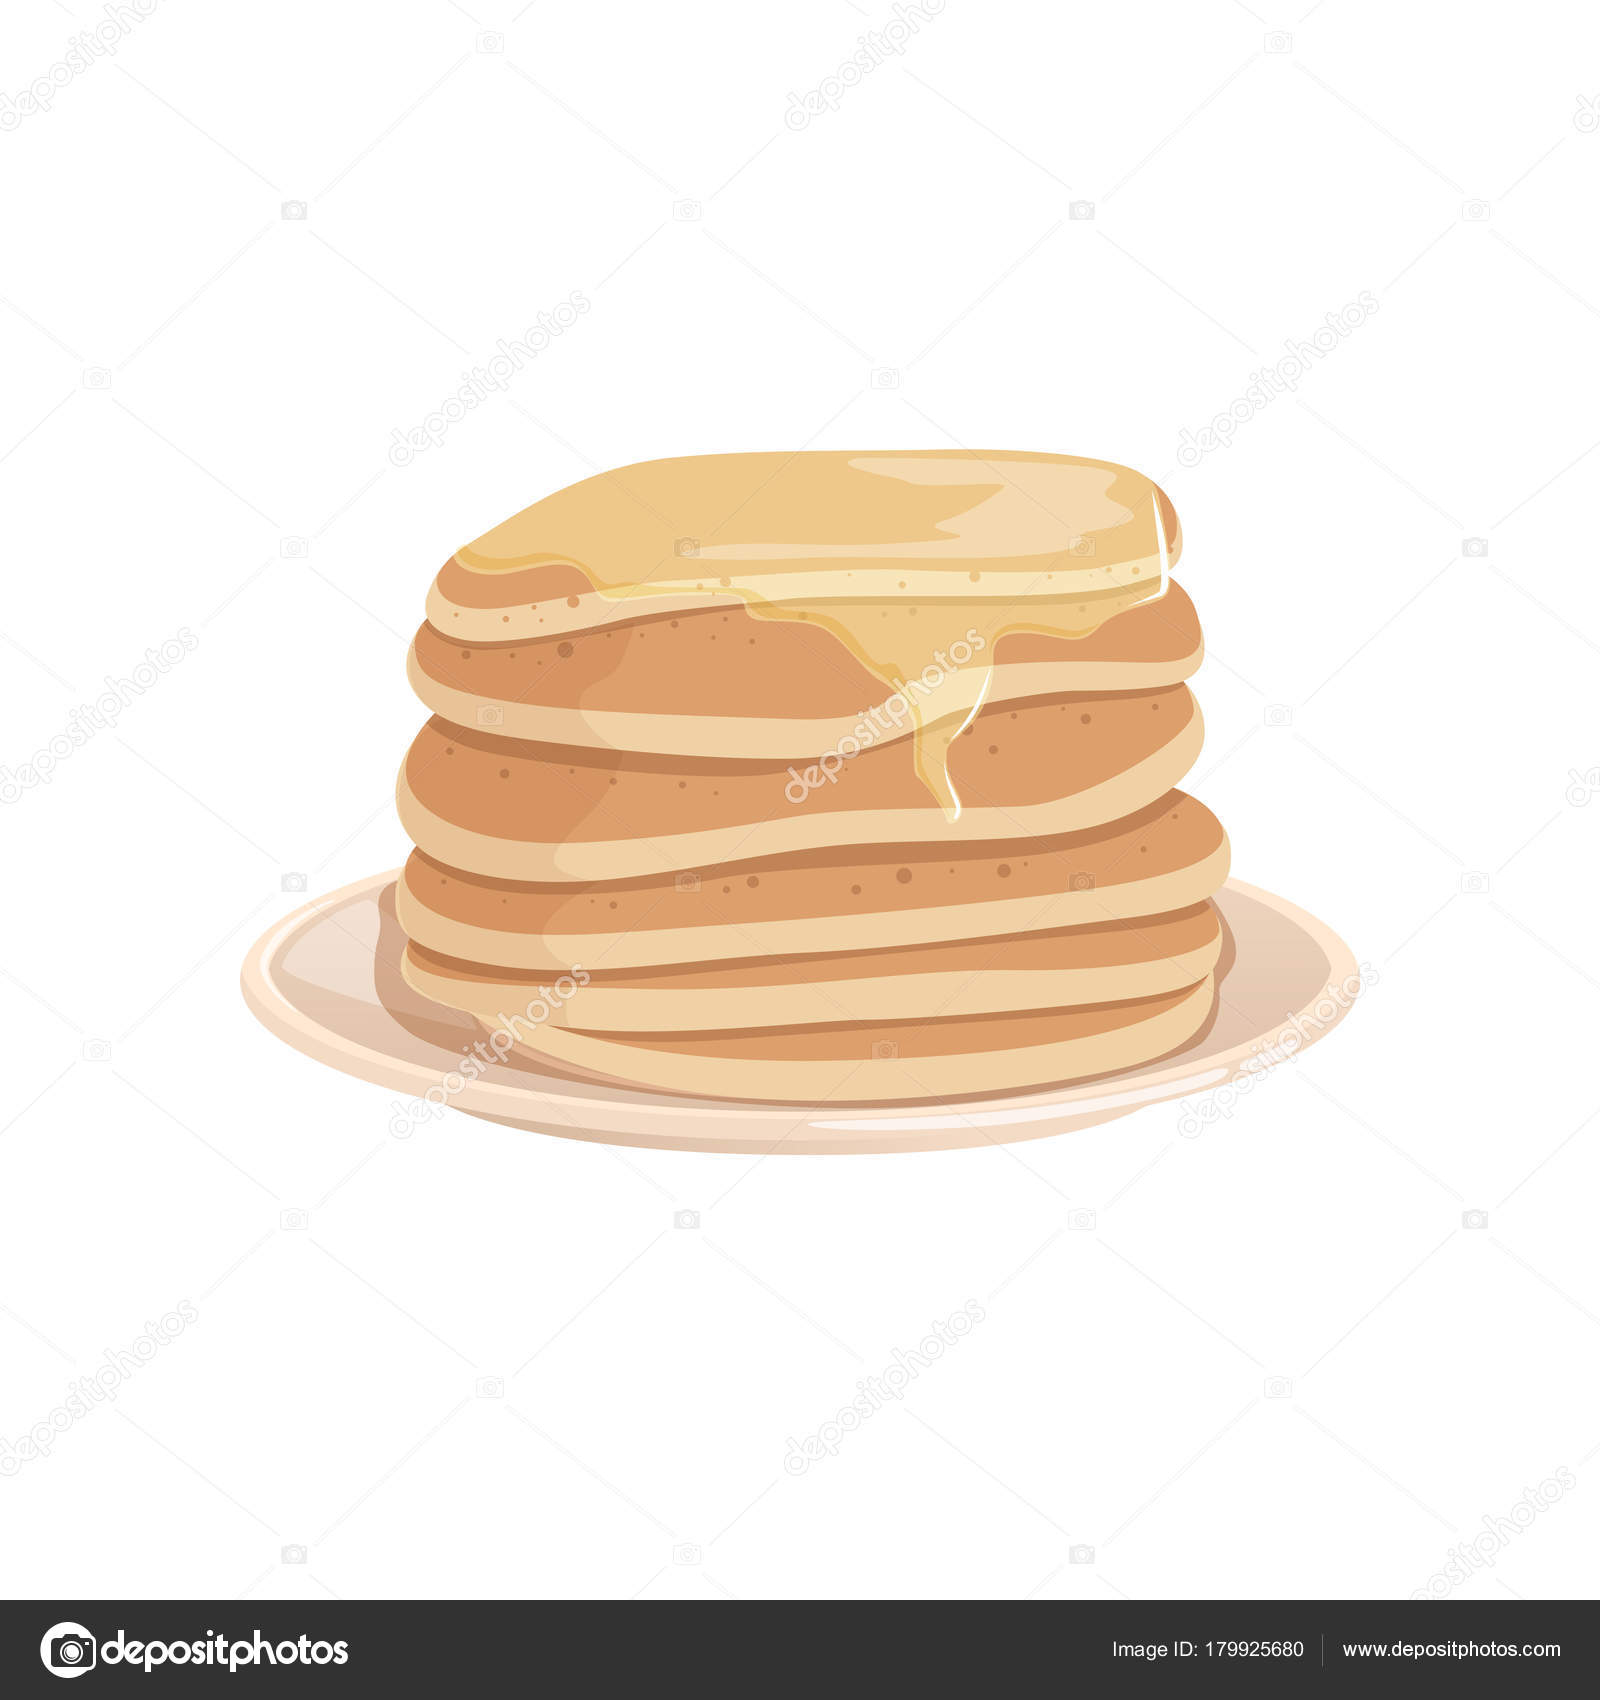 Pile of delicious pancakes topped with honey or maple syrup on plate tasty fast food dessert colorful vector illustration in flat style isolated on white background design for menu or recipe book forumfinder Image collections